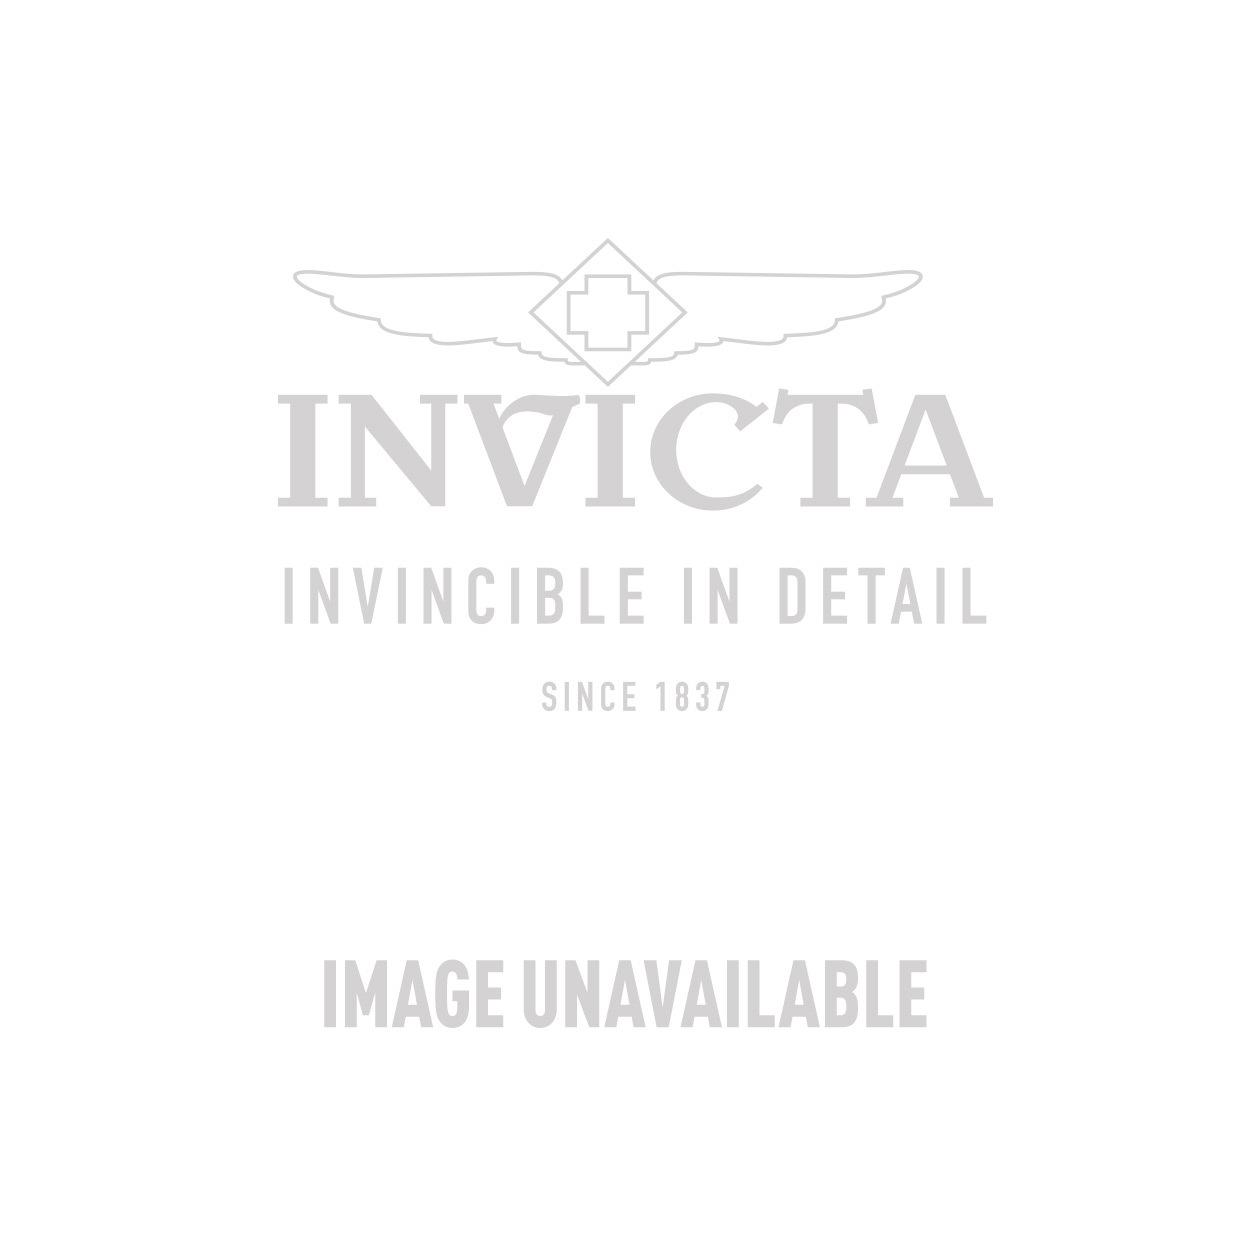 Invicta Aviator Swiss Movement Quartz Watch - Stainless Steel case with Brown, Ivory tone Leather band - Model 18886